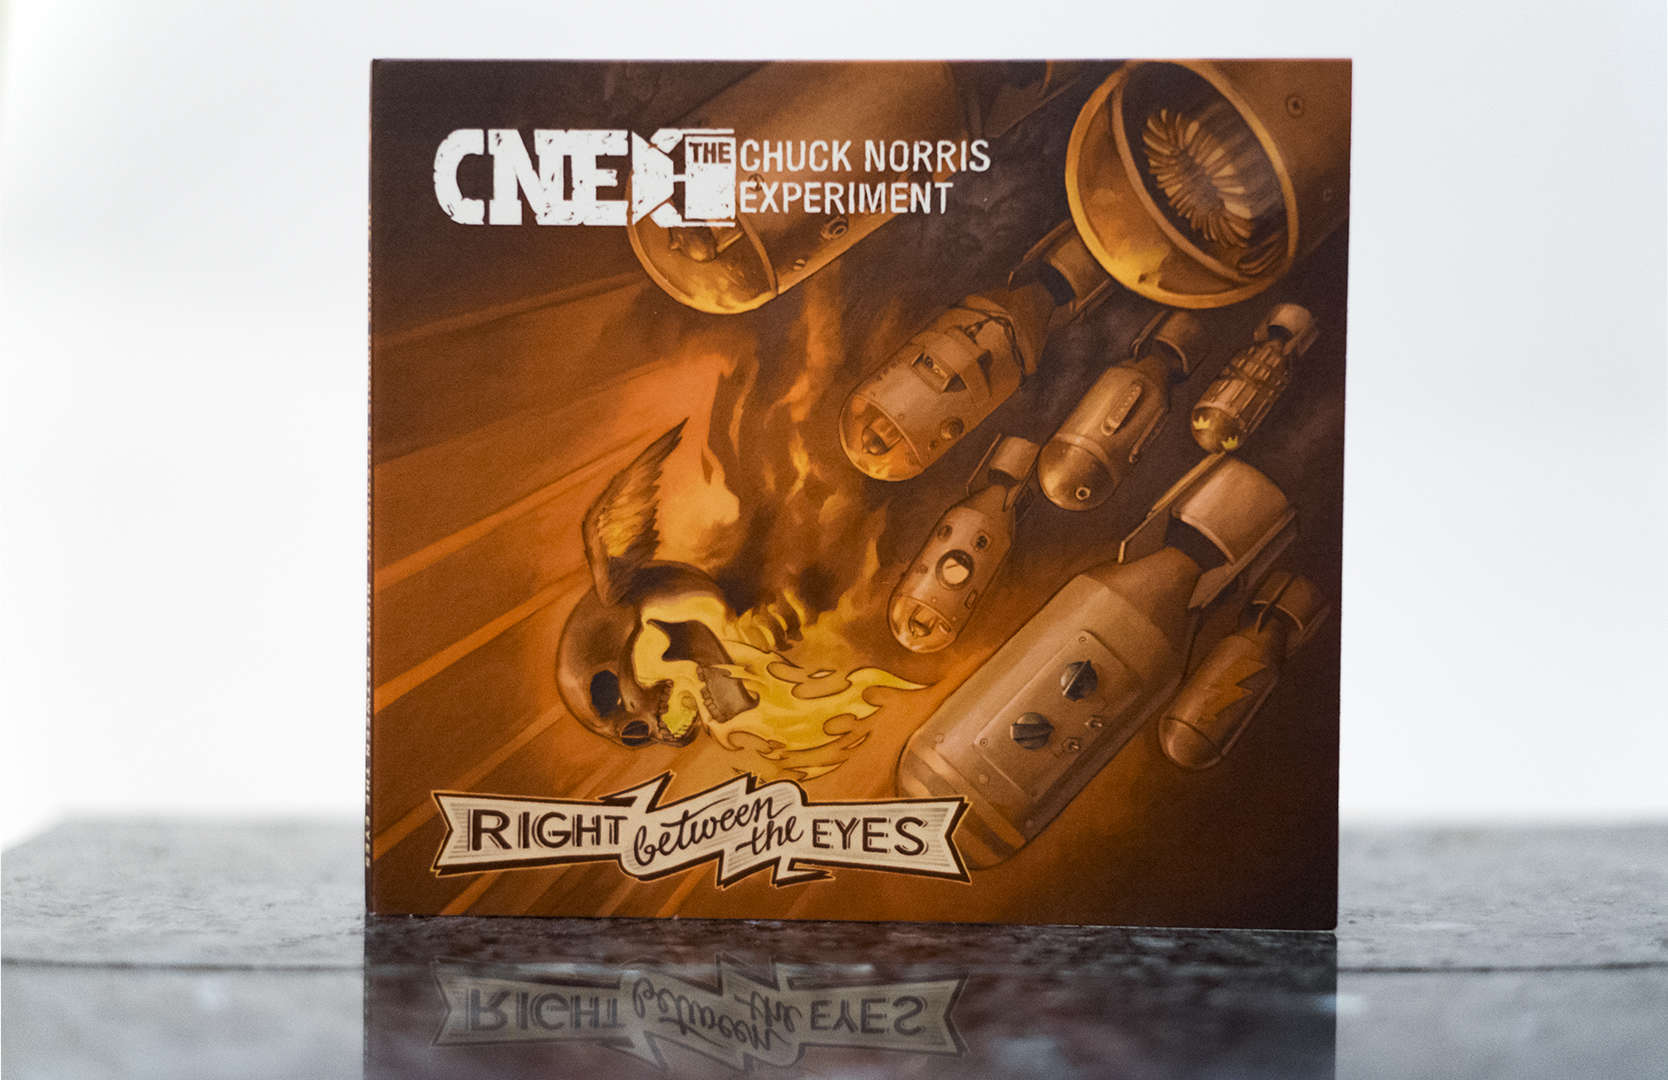 The Chuck Norris Experiment – Right Between The Eyes